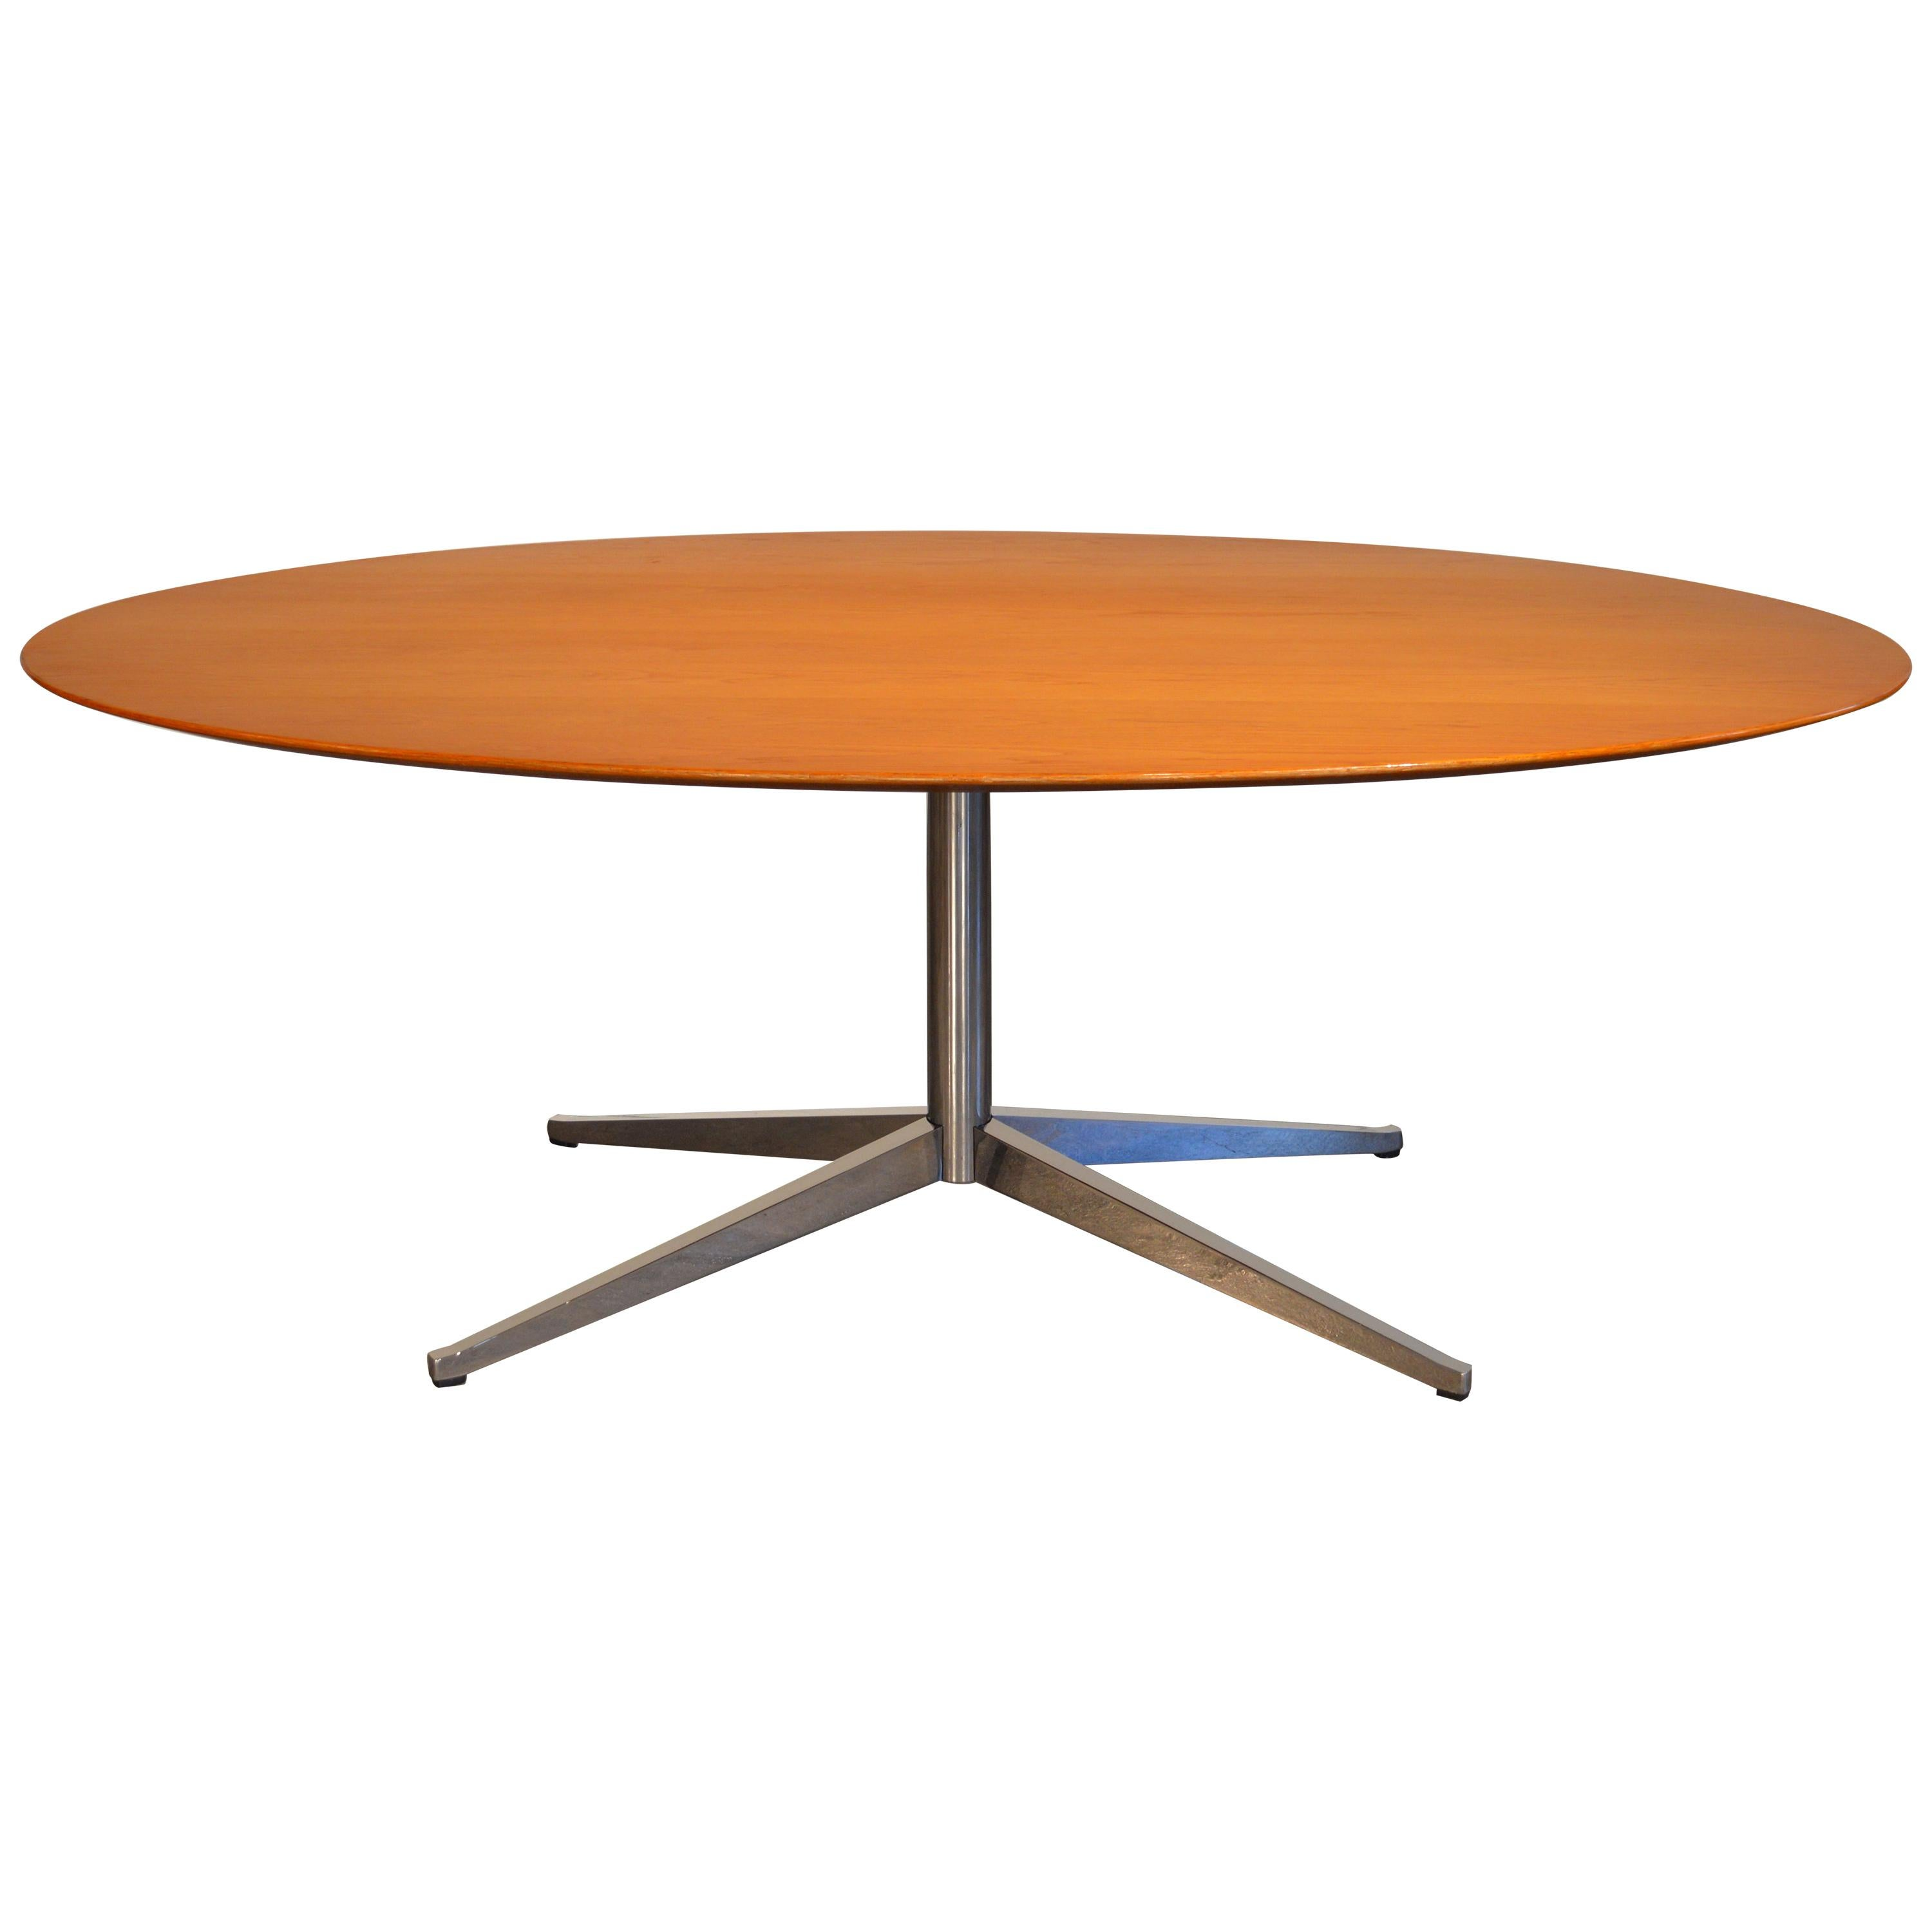 Florence Knoll Oval Table/Desk with Oak Top